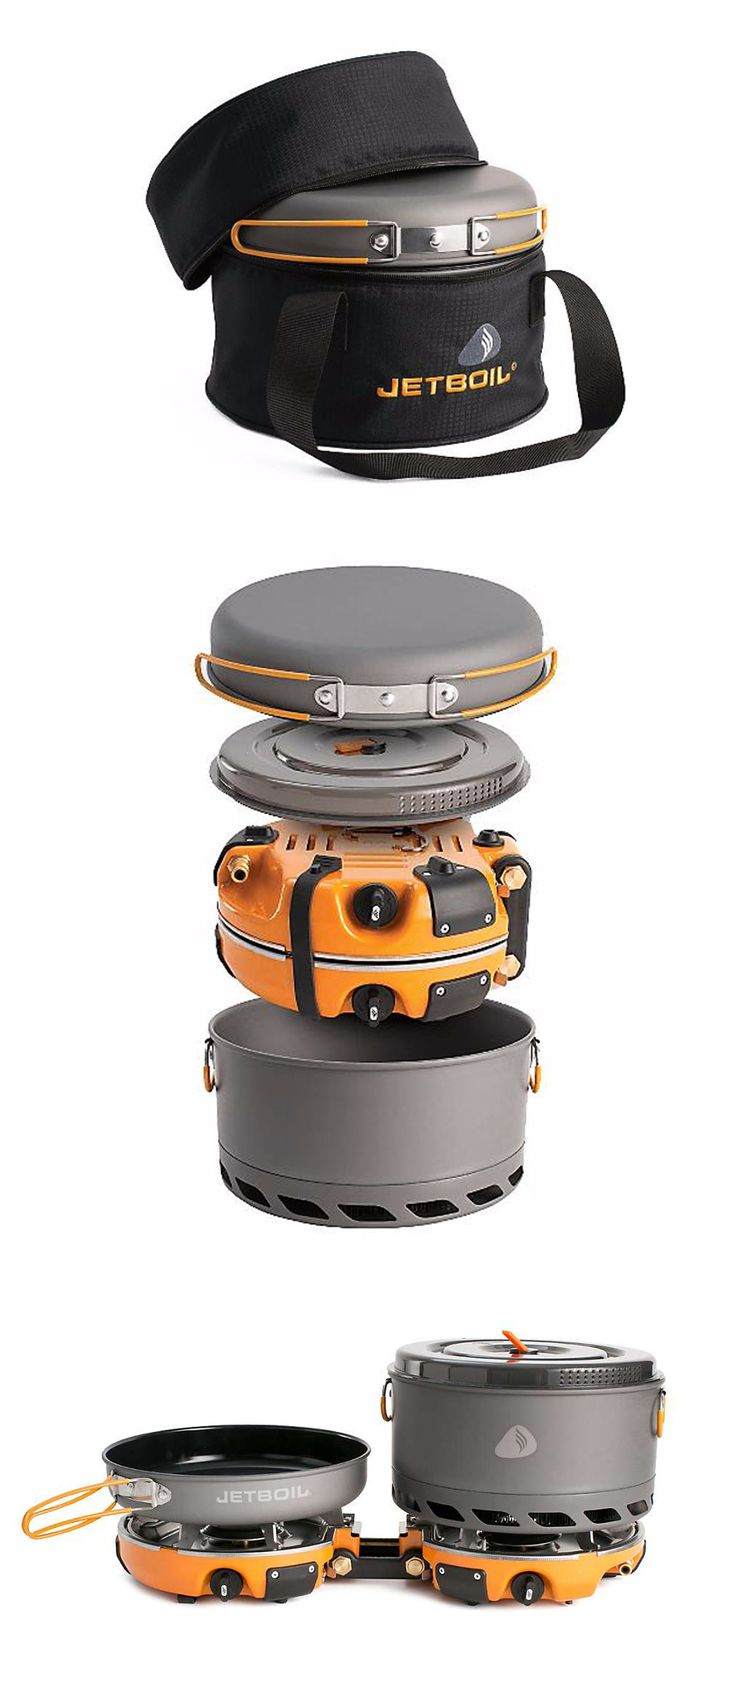 """The Jetboil Genesis Base Camp 2 Burner System is a group cook stove for meal time at base camp. Included with the dual burners is a 10"""" fry pan, a 5L FluxPot with lid, and a carrying case to keep them all together while traveling. This can quickly get 1 liter of water to boil, in 3 minutes, 15 seconds to be exact. Plus, if you need some additional water on the side, you can always purchase the Luna Satellite Burner separately and attach it to the Genesis. Genesis or genius? You figure it…"""